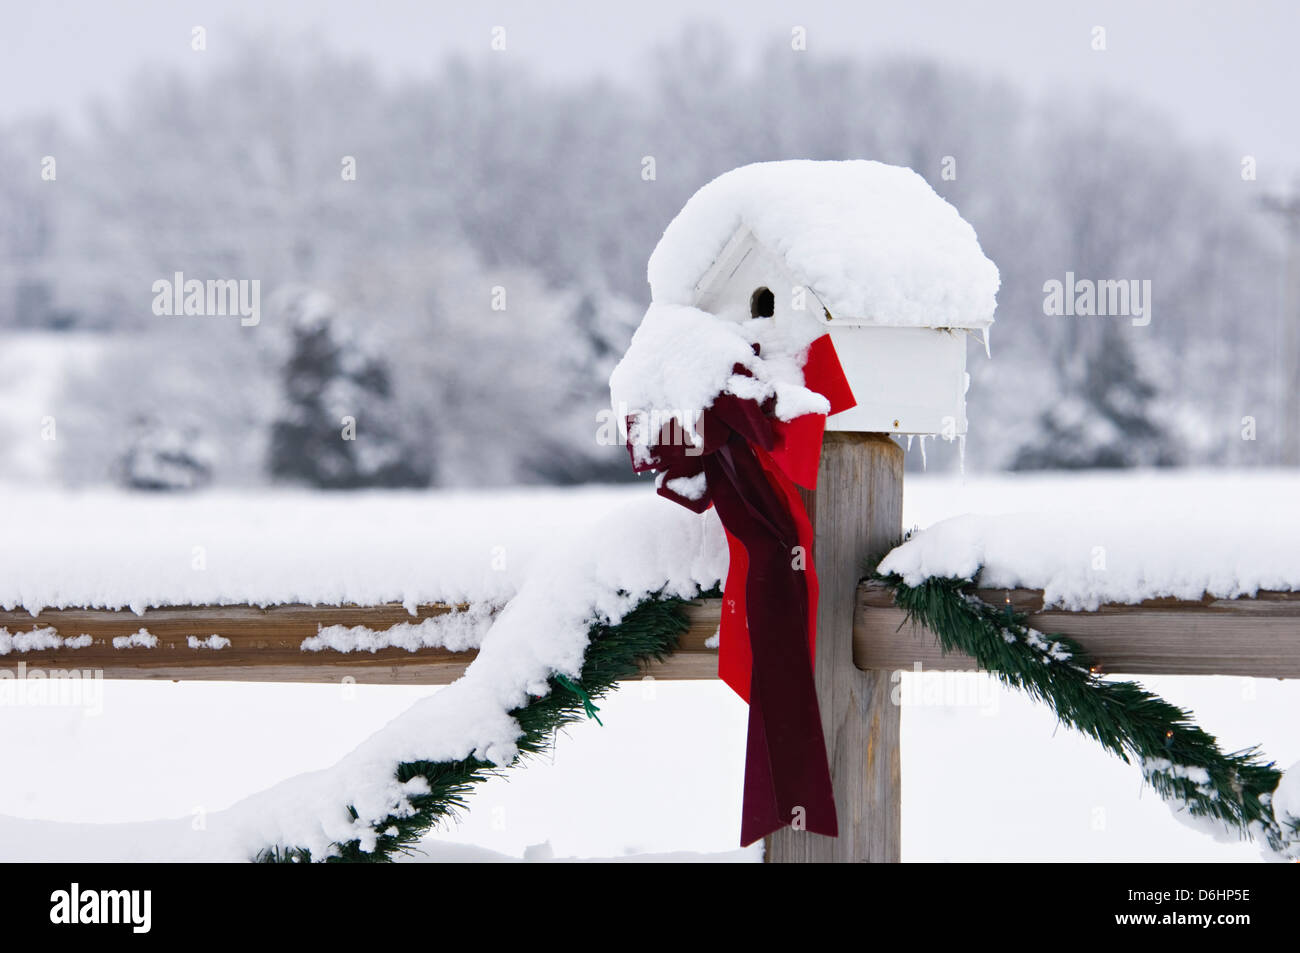 Bird House on Fence Post in the Snow Decorated for Christmas near Starlight, Indiana - Stock Image